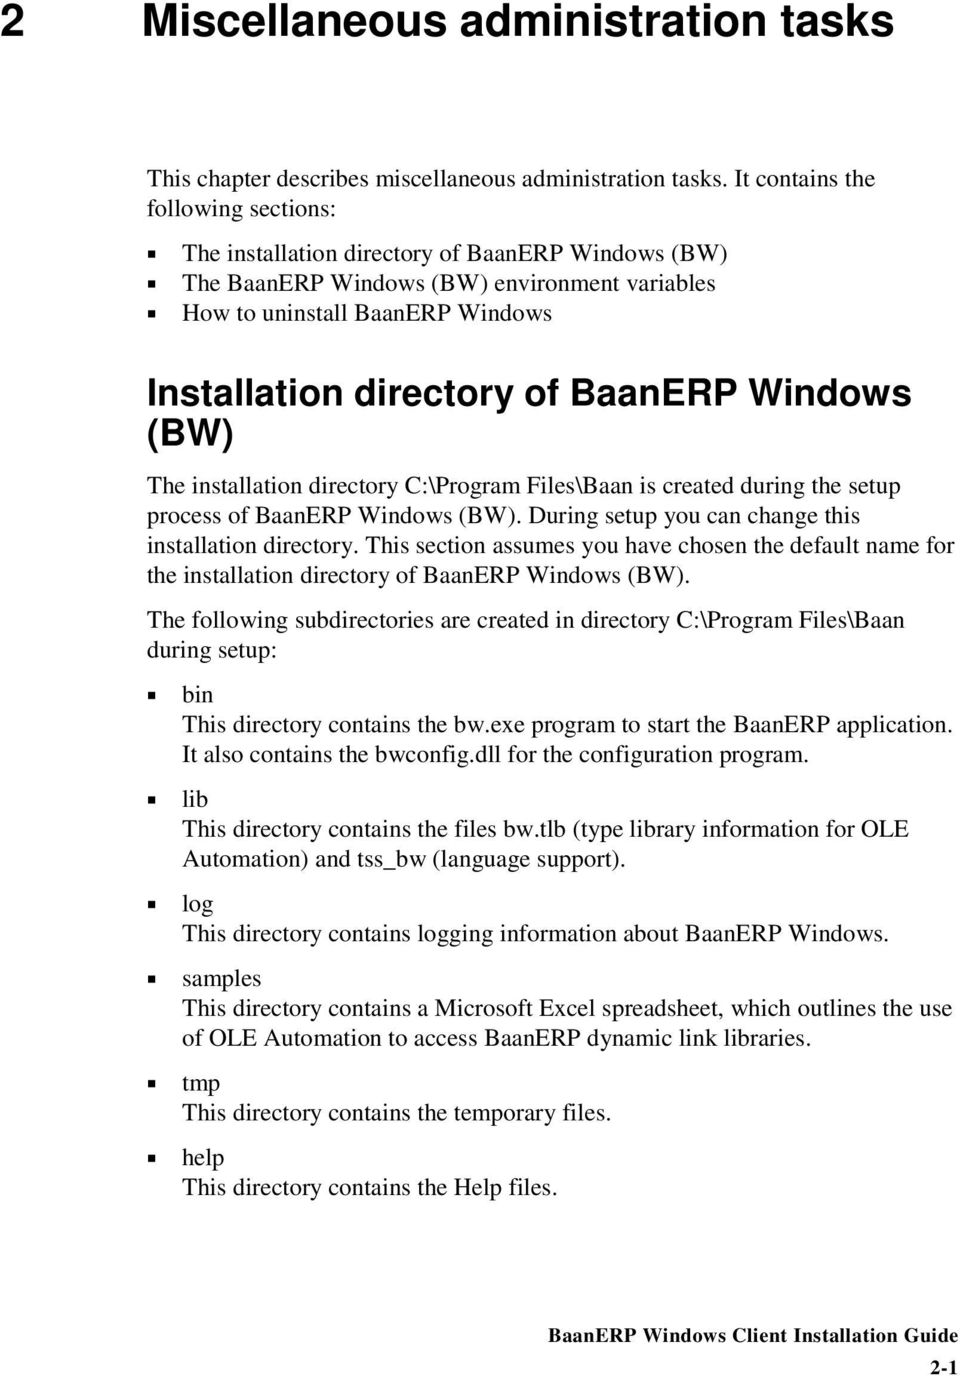 istallatio directory C:\Program Files\Baa is created durig the setup process of BaaERP Widows (BW). Durig setup you ca chage this istallatio directory.